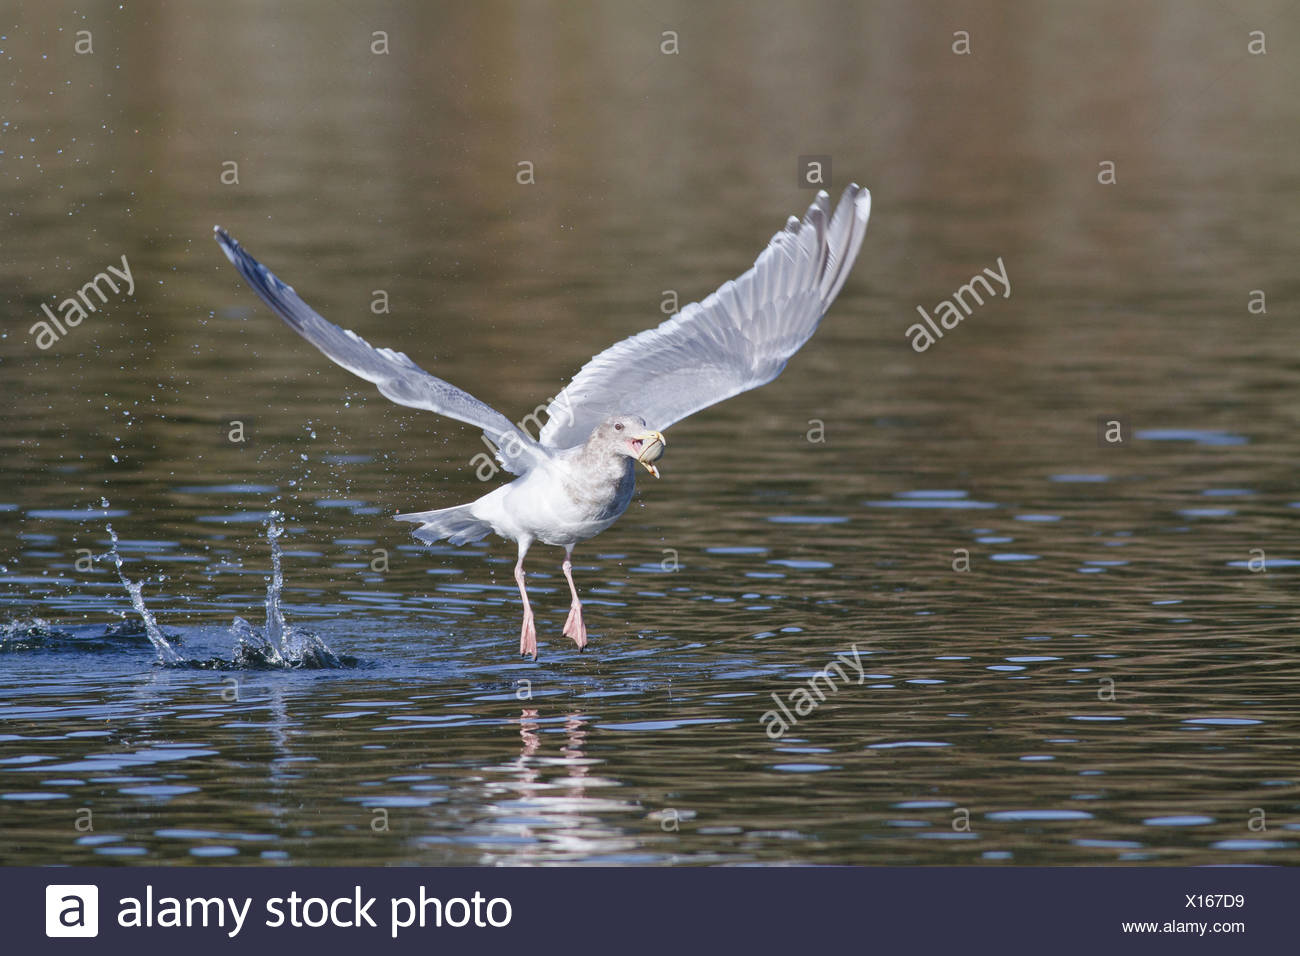 Glaucous-winged Gull (Larus glaucescens) flying near Victoria, BC, Canada. - Stock Image